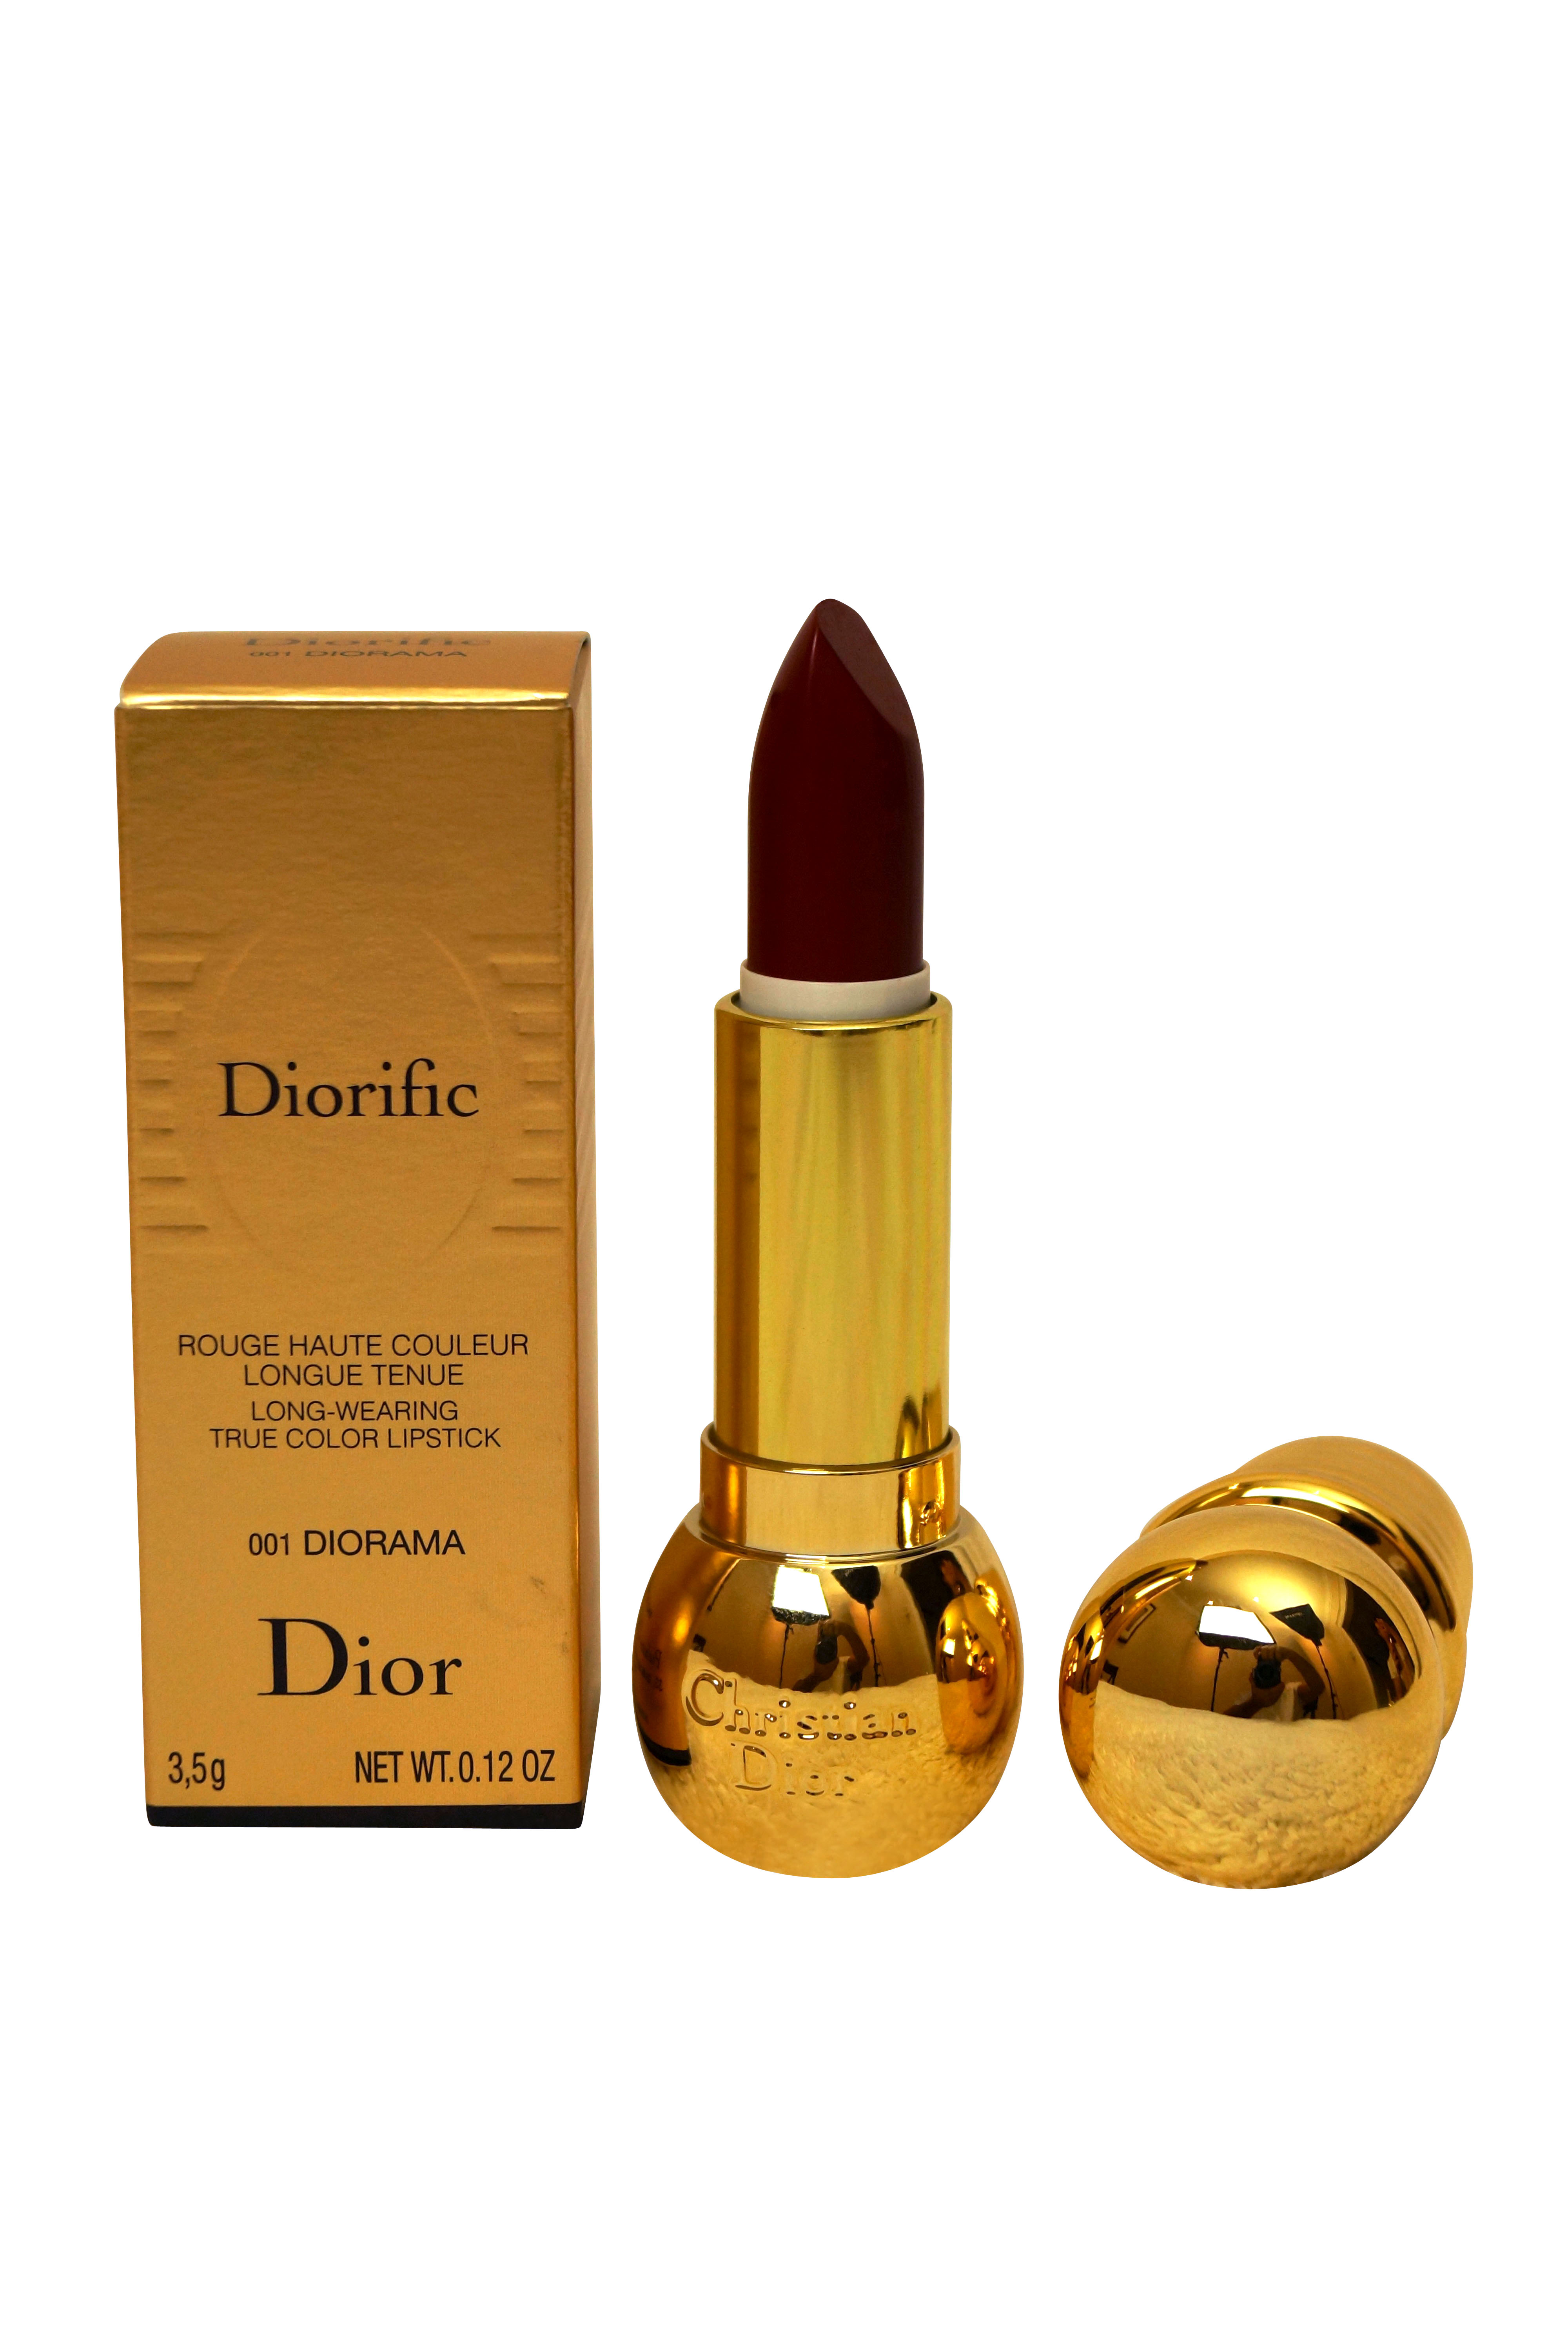 Christian Dior Diorific Long Wearing True Color Lipstick 001 Diorama at Sears.com